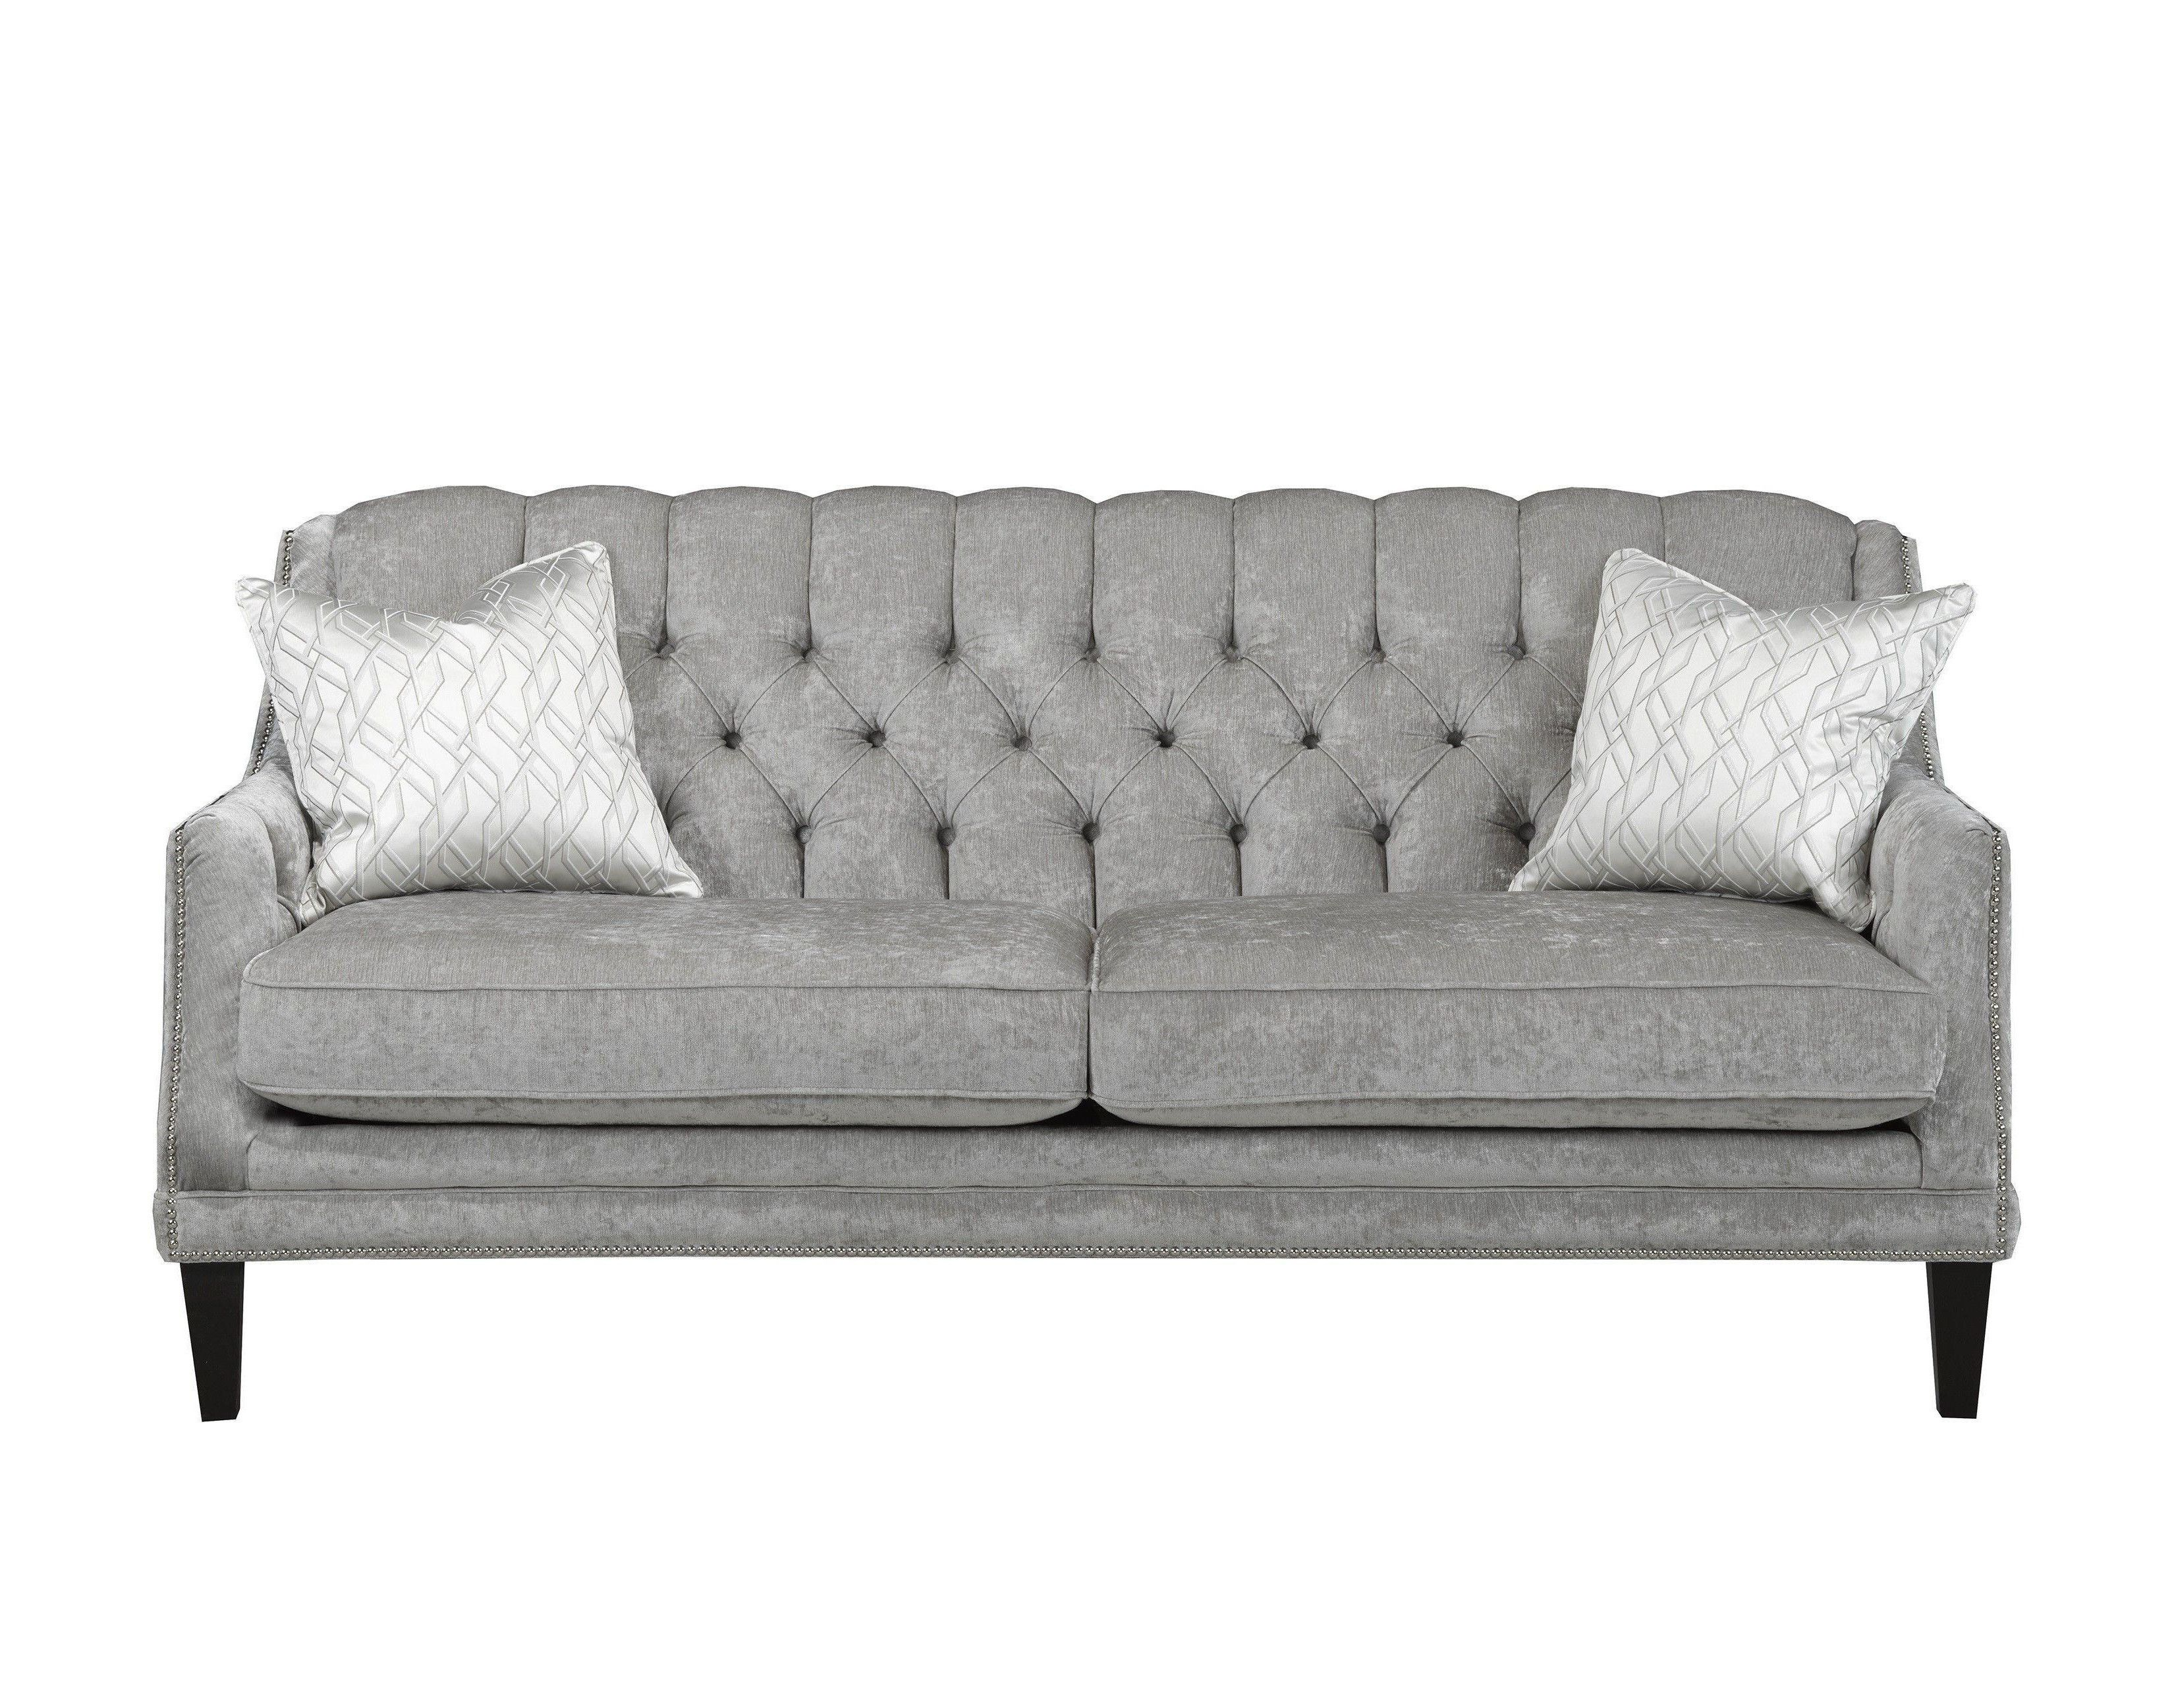 Sessel Mit Relaxfunktion Liebenswert Sessel Relaxfunktion Couch Möbel Di 2018 Pinterest